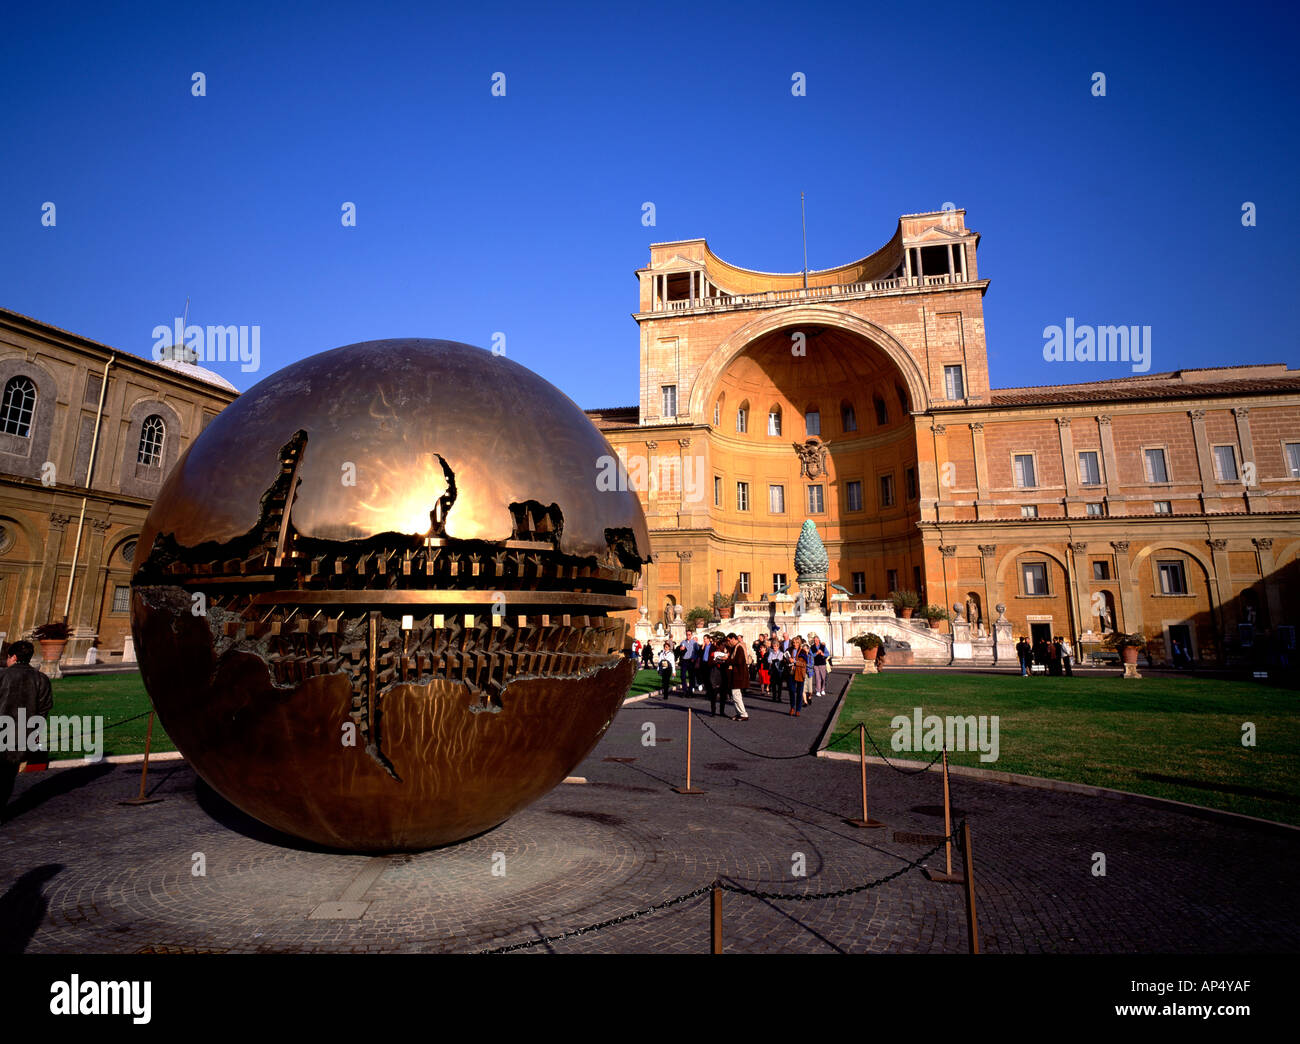 Sphere Within Sphere, Arnaldo Pomodoro, Vatican, Rome, Italy, Sculpture, Sphere - Stock Image